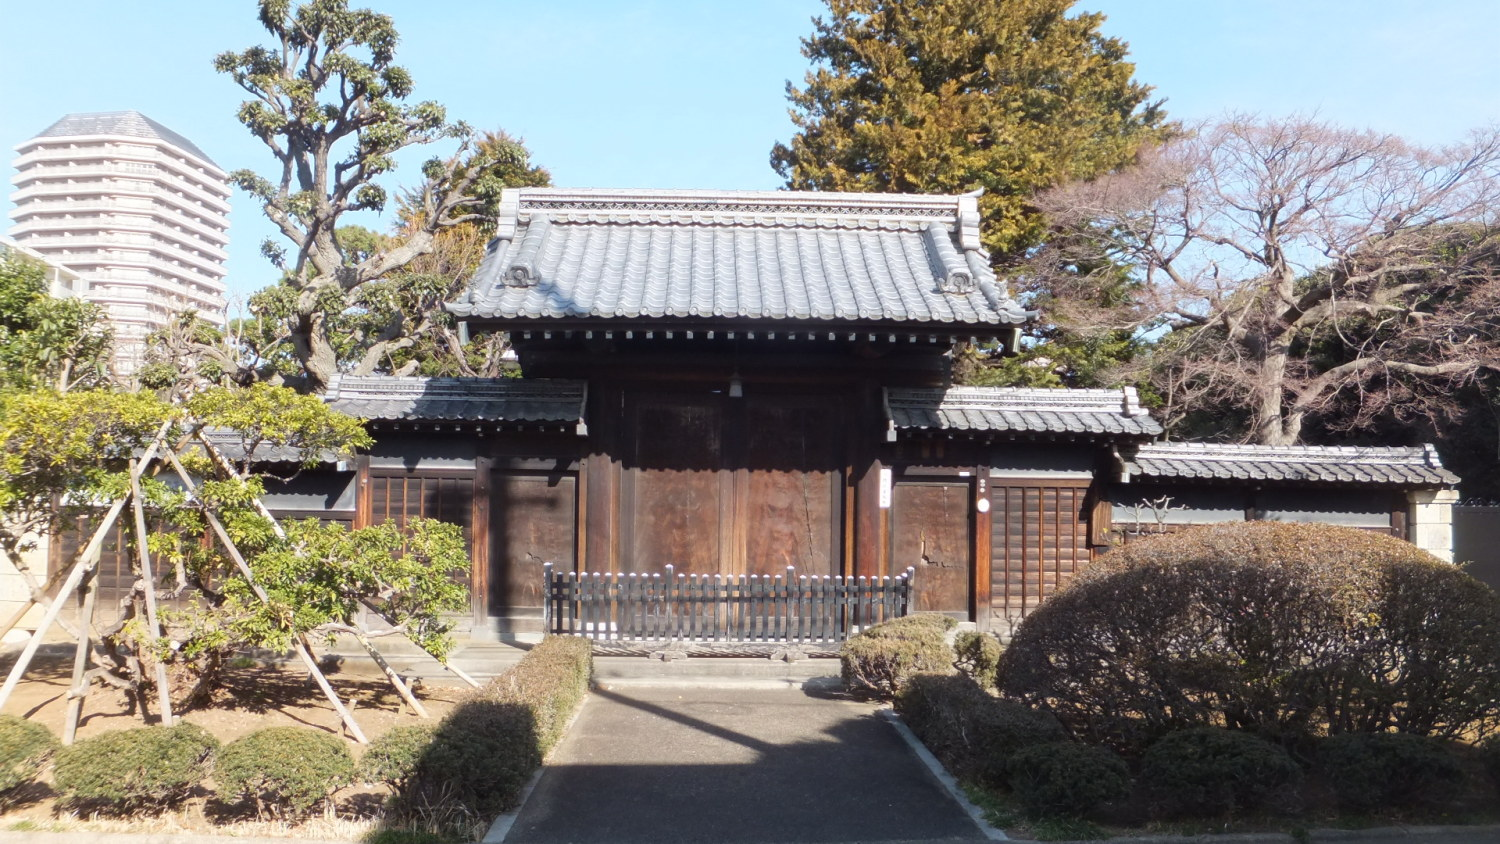 Is it samurai residence? It is the gate image of this